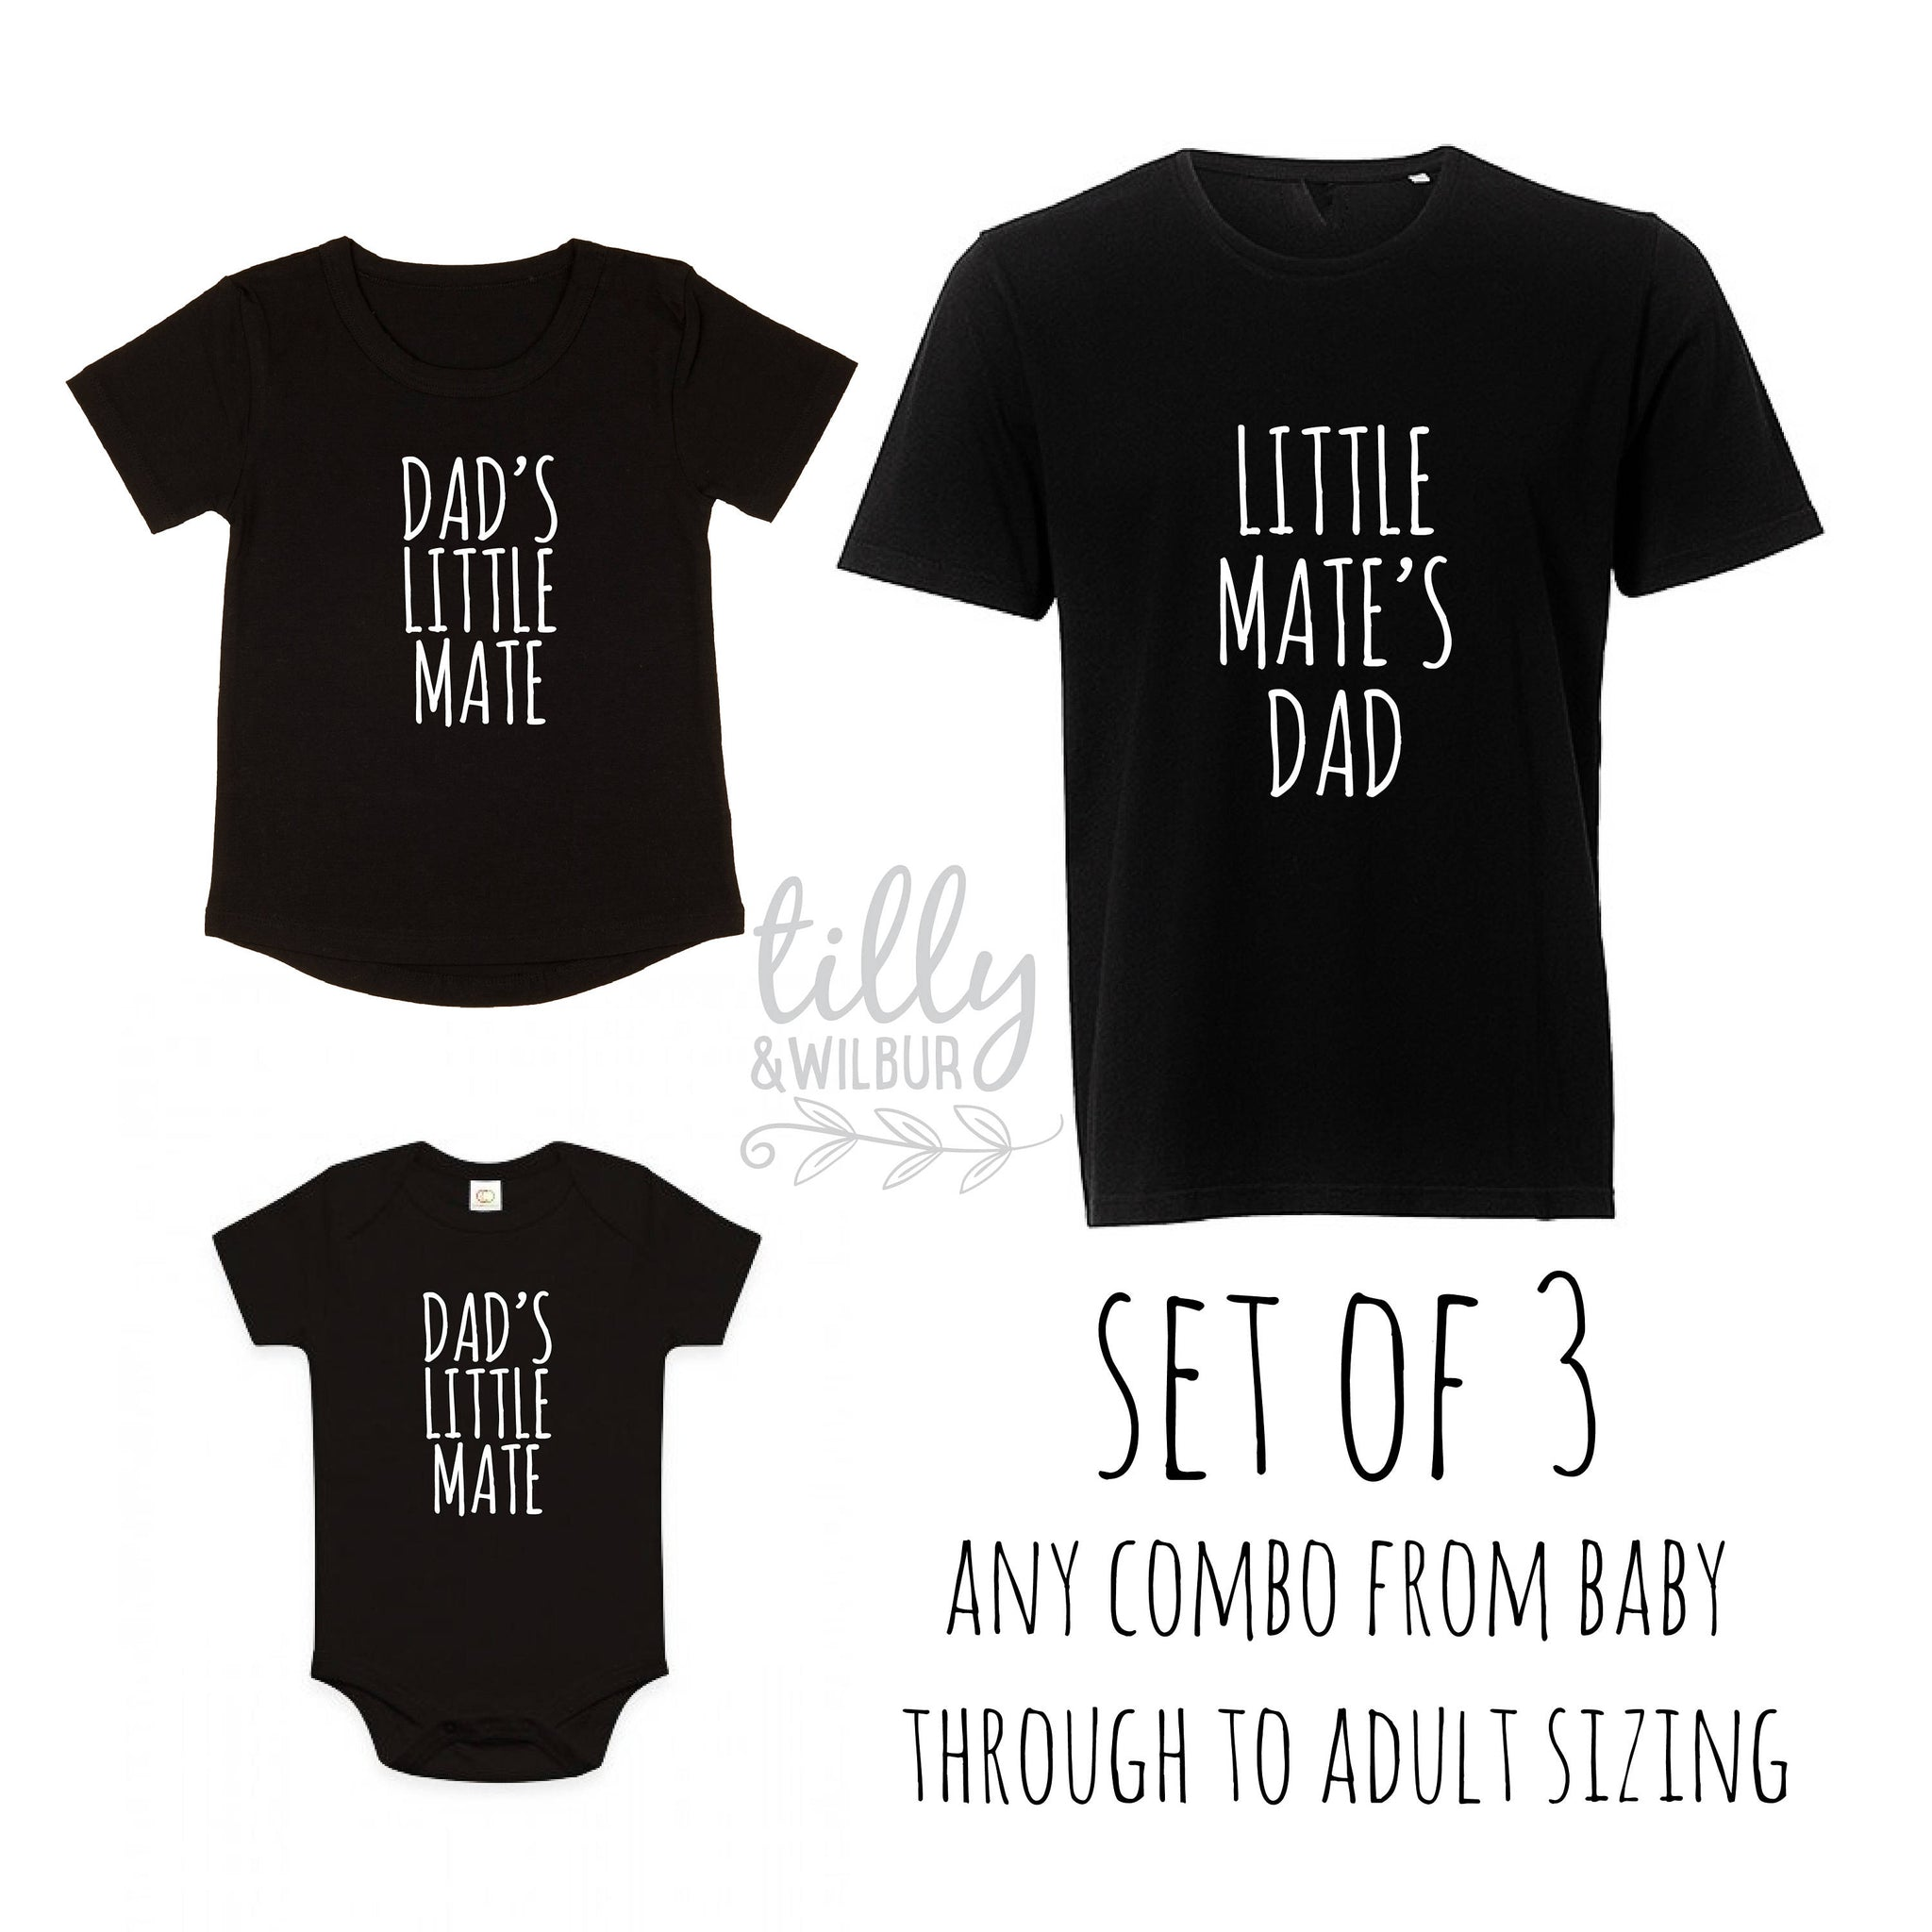 11616903 Father's Day Shirts, Father Son Matching Shirts, Dad's Little Mate, Little Mate's  Dad